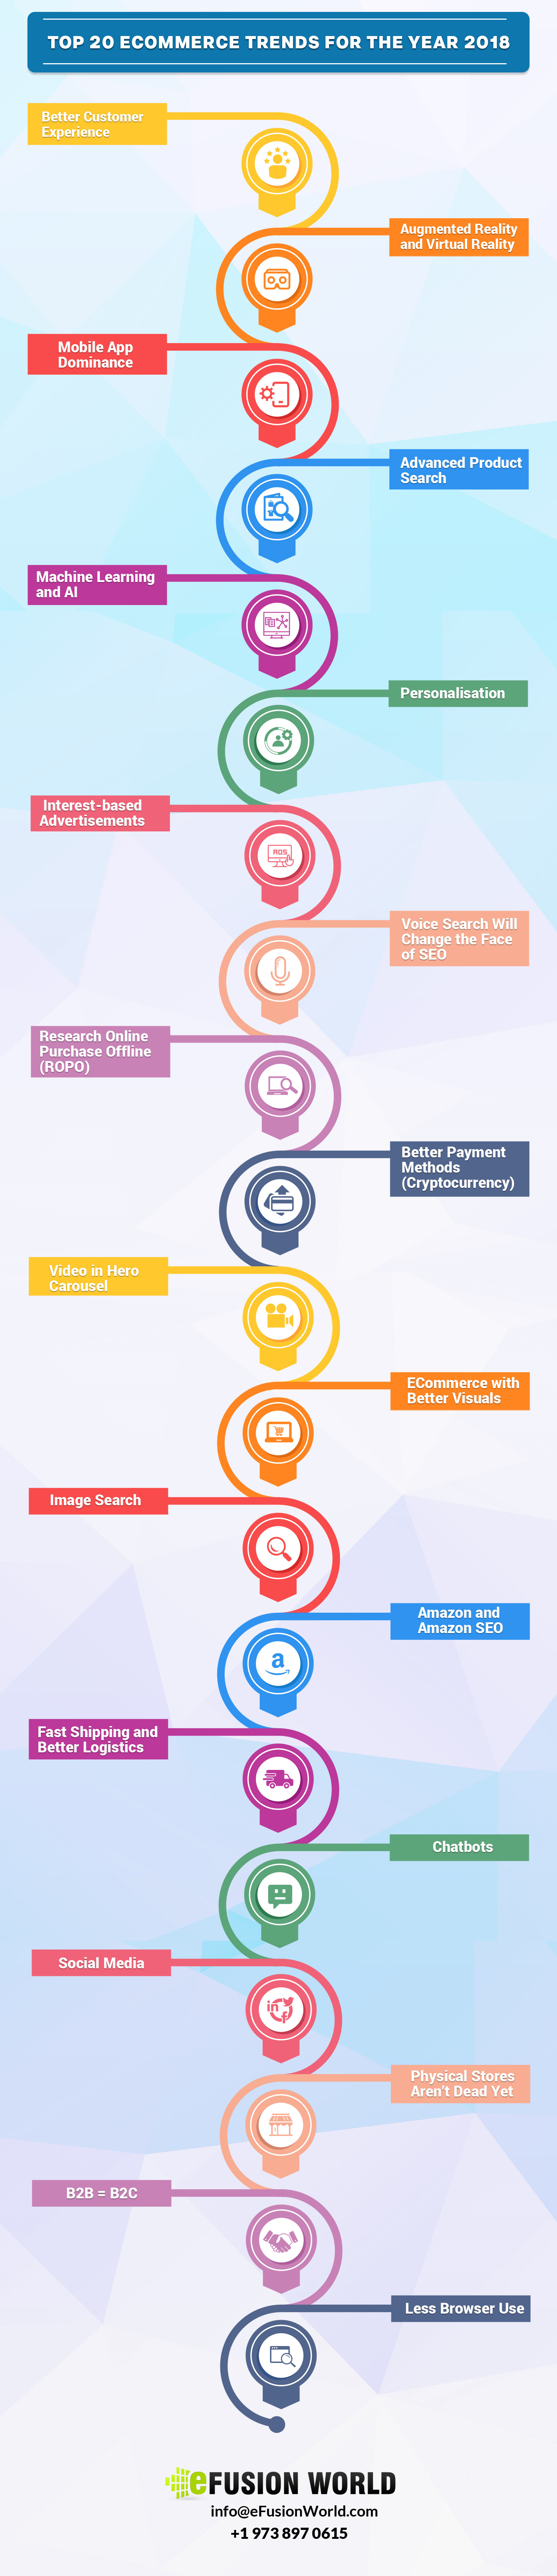 Top 20 Ecommerce Trends for the Year 2018 Infographic